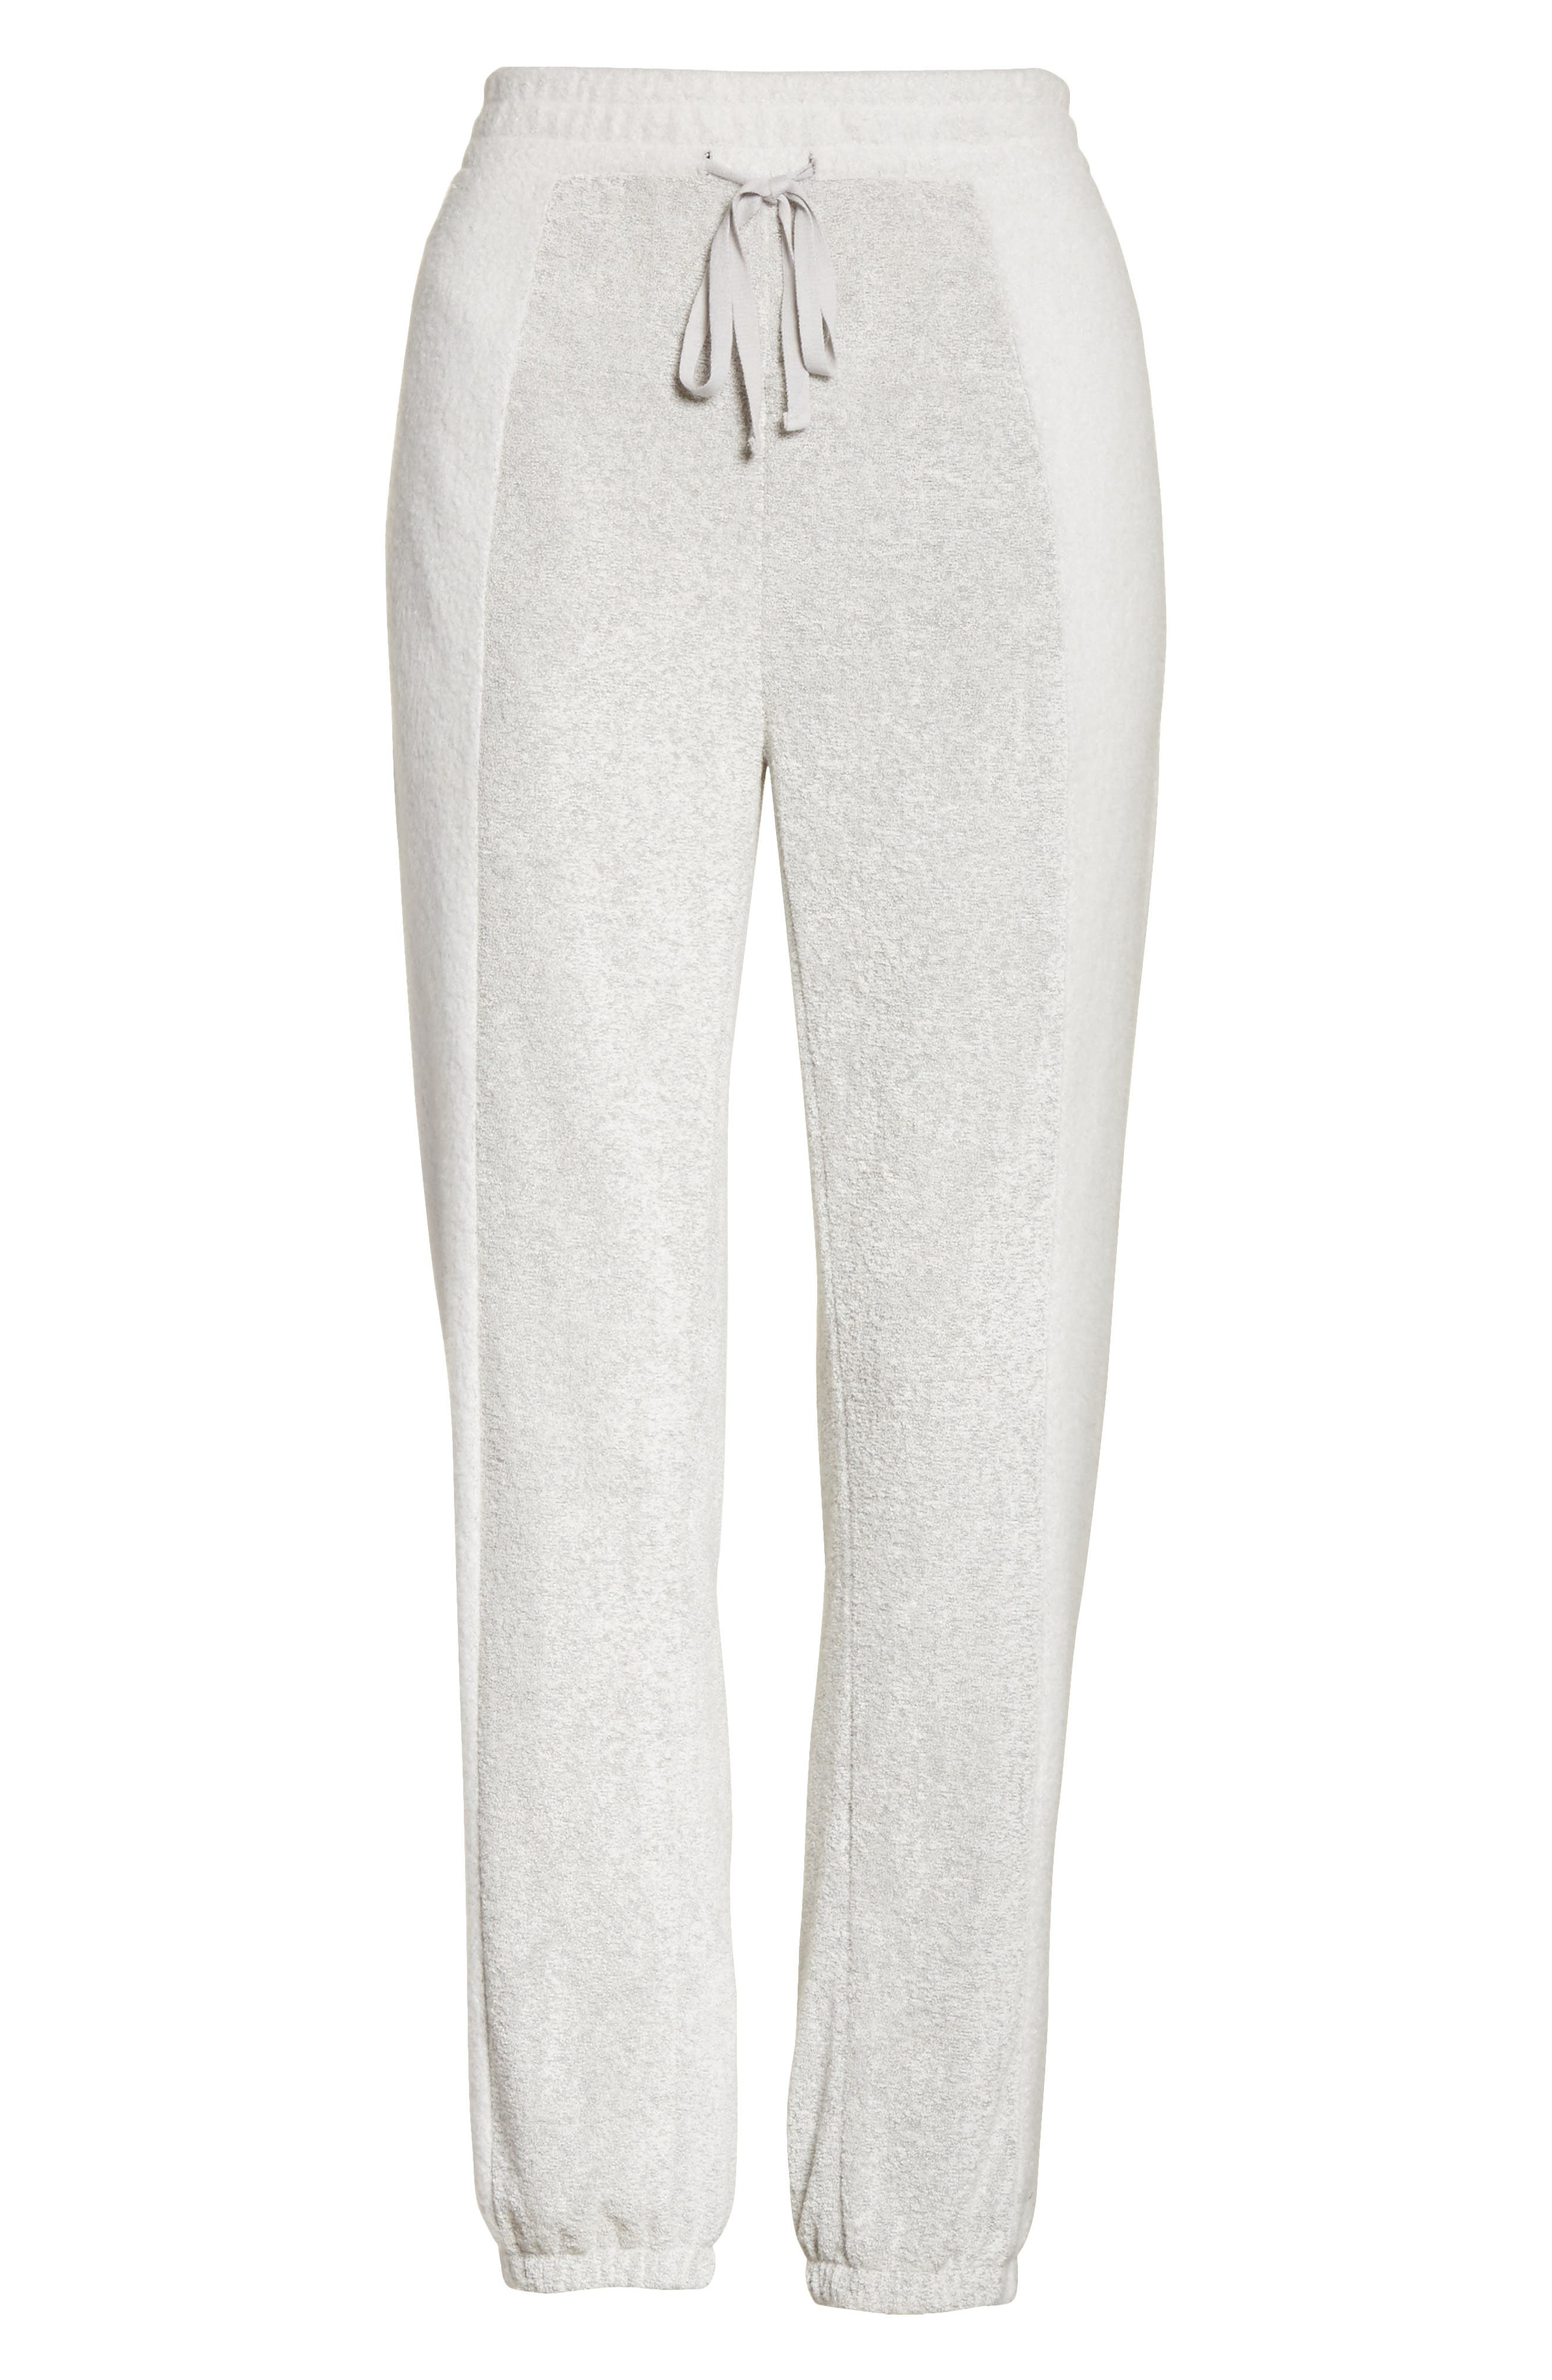 All Day All Night Jogger Pants,                             Alternate thumbnail 6, color,                             Grey